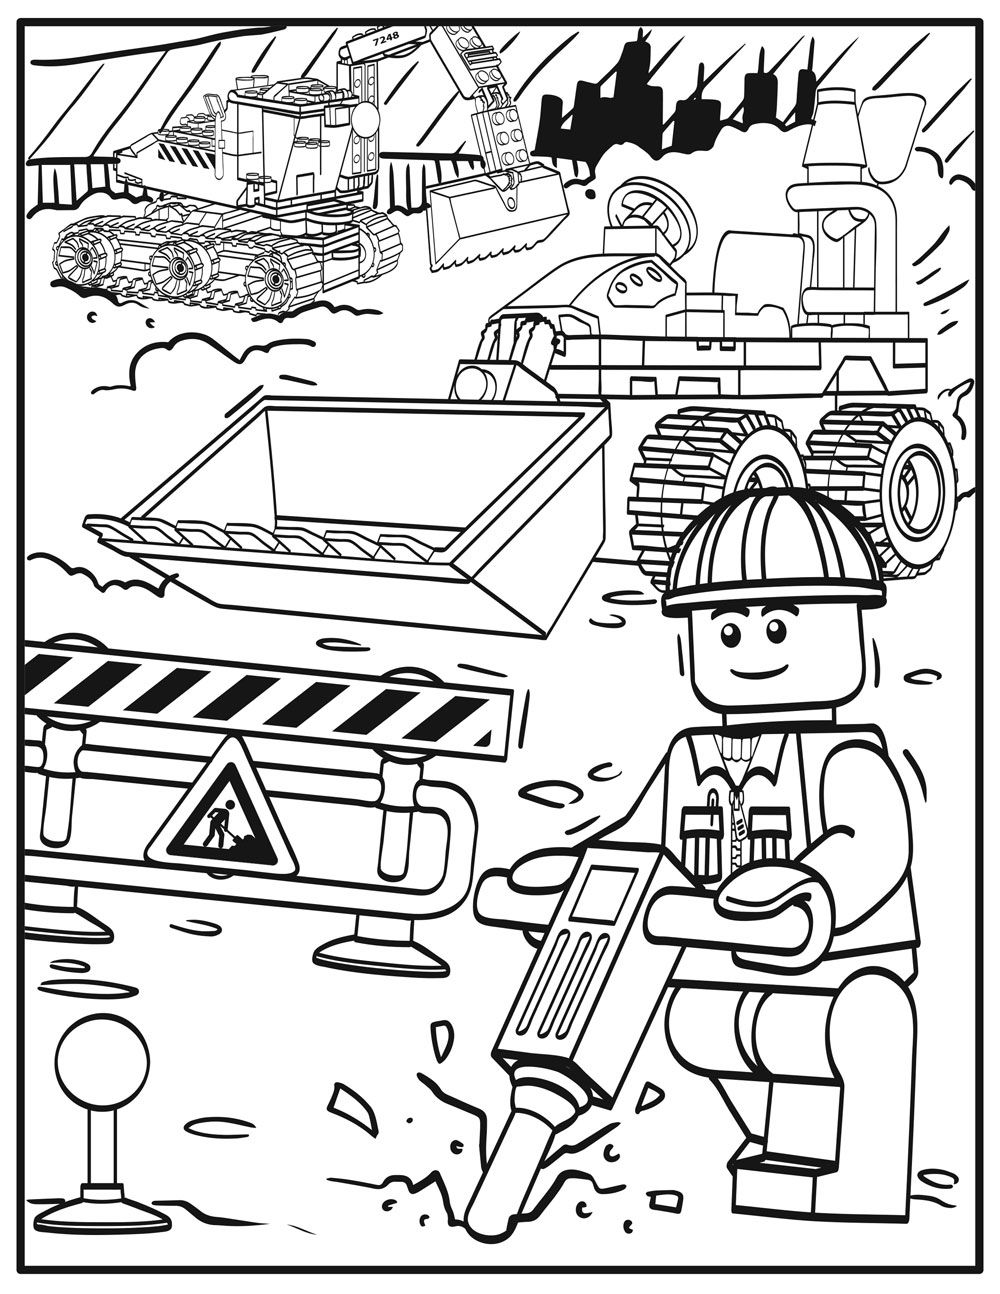 Lego Inspired Printable Coloring Pages Lego Coloring